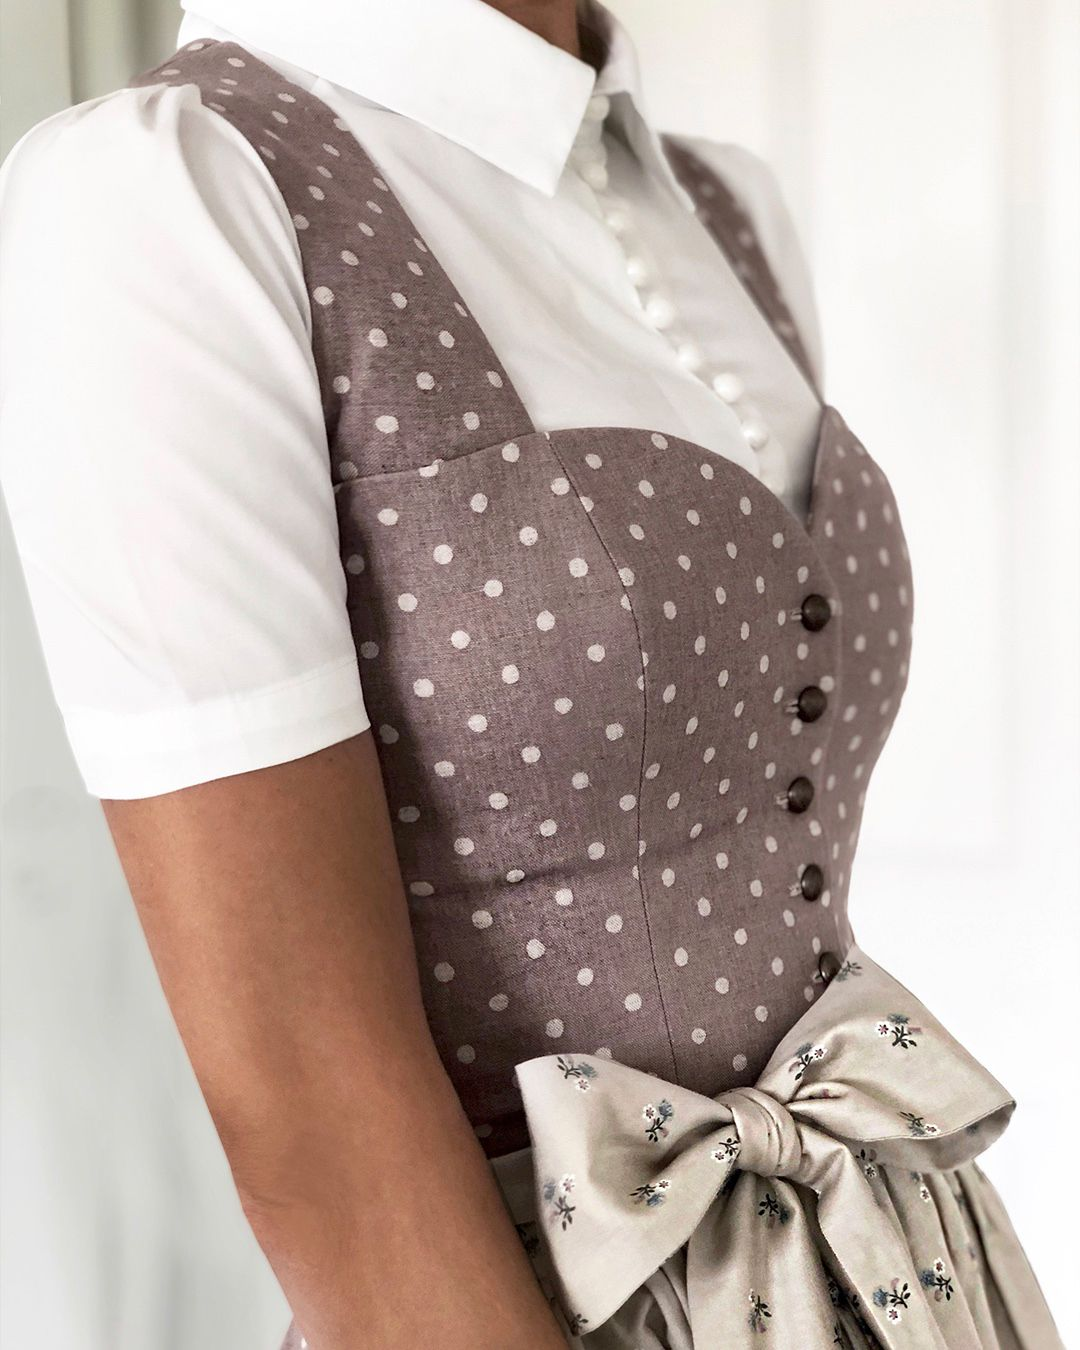 Pin von Teri auf Creative things to do and know | Dirndl ...